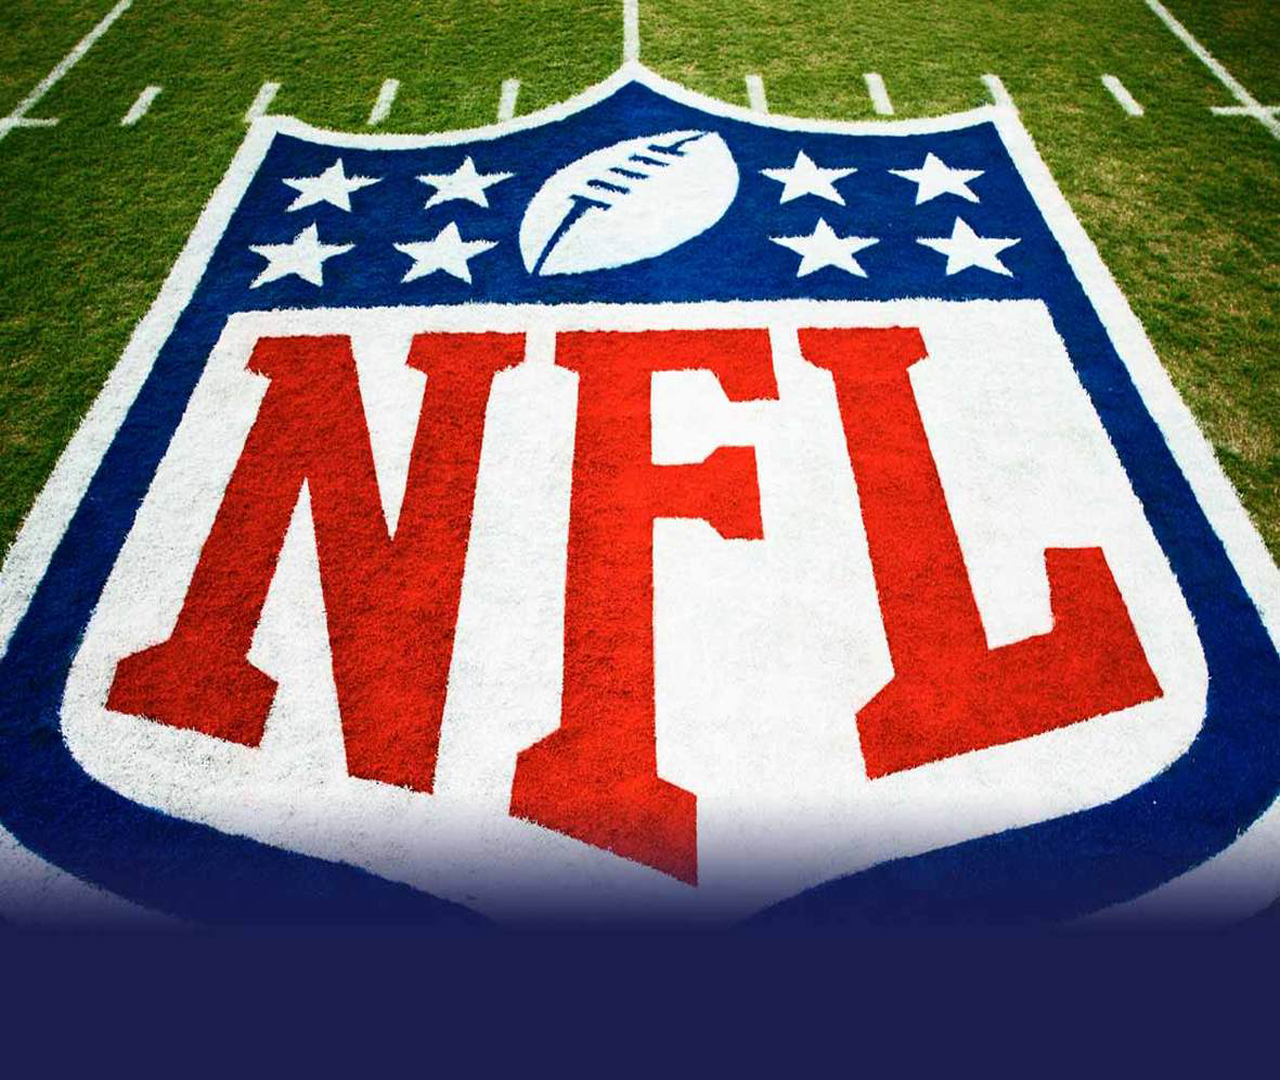 Free Download NFL Football HD Wallpapers For